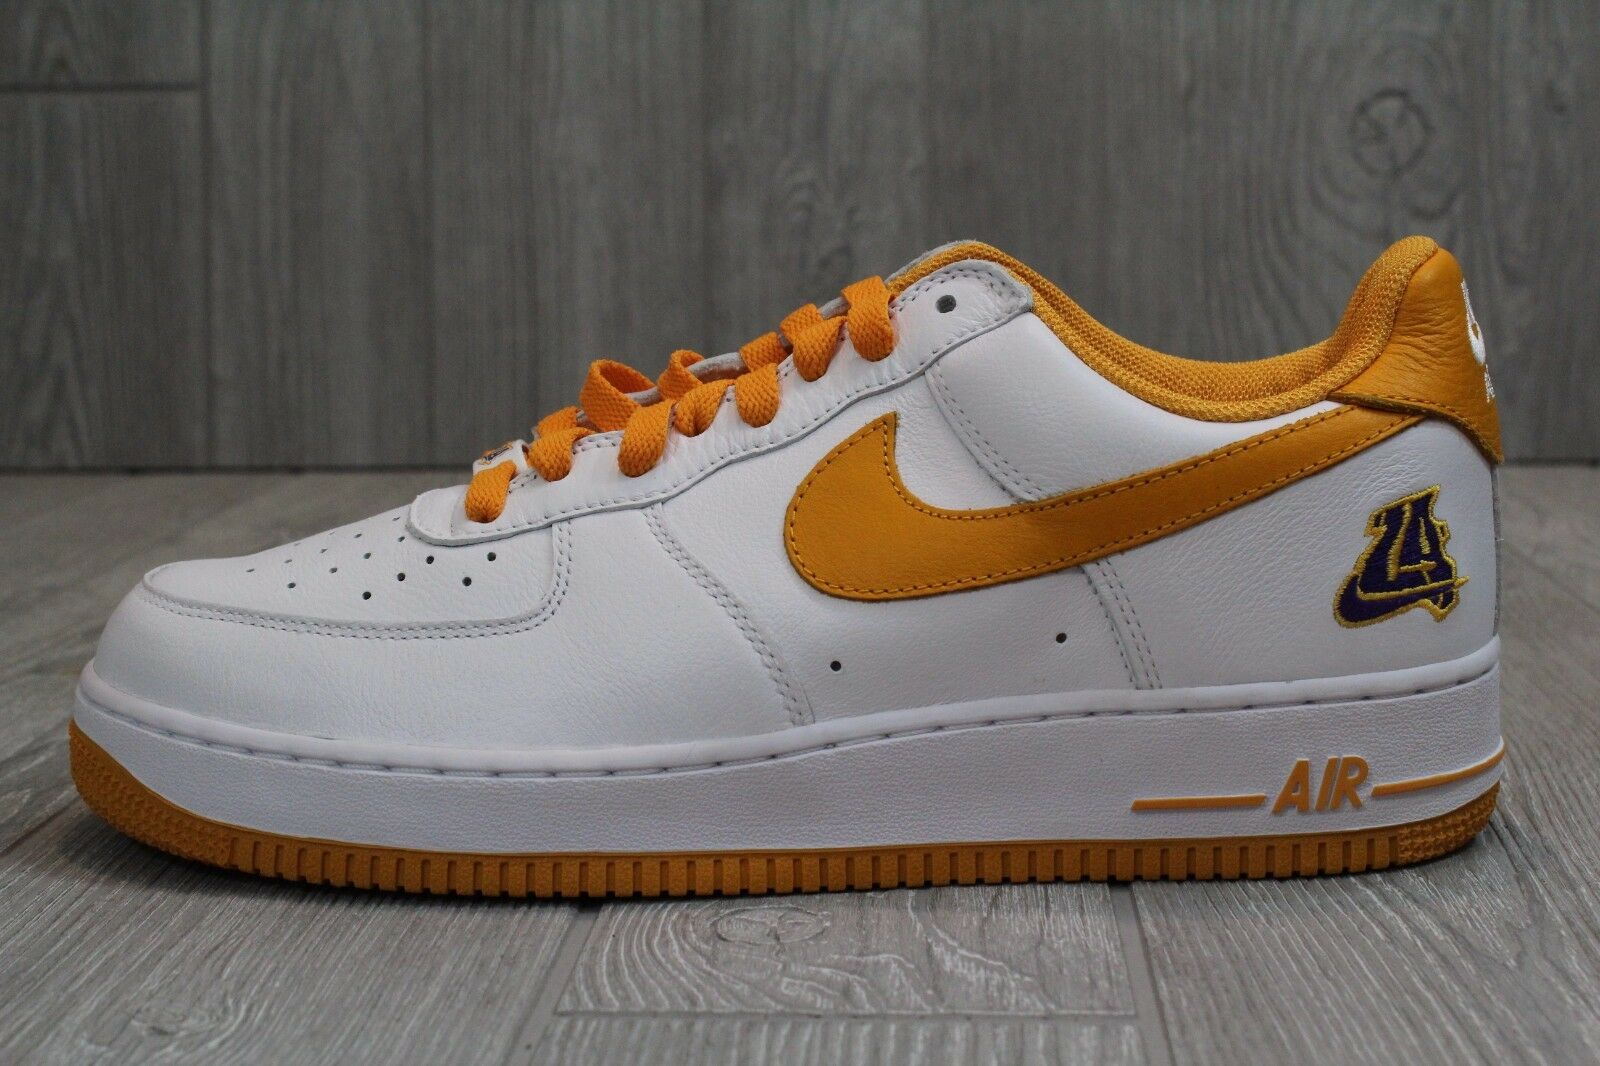 22 Mens Nike Air Retro Force 1 Undefeated X Retro Air LA Lakers Shoes 845053-103 10.5 12 322bff